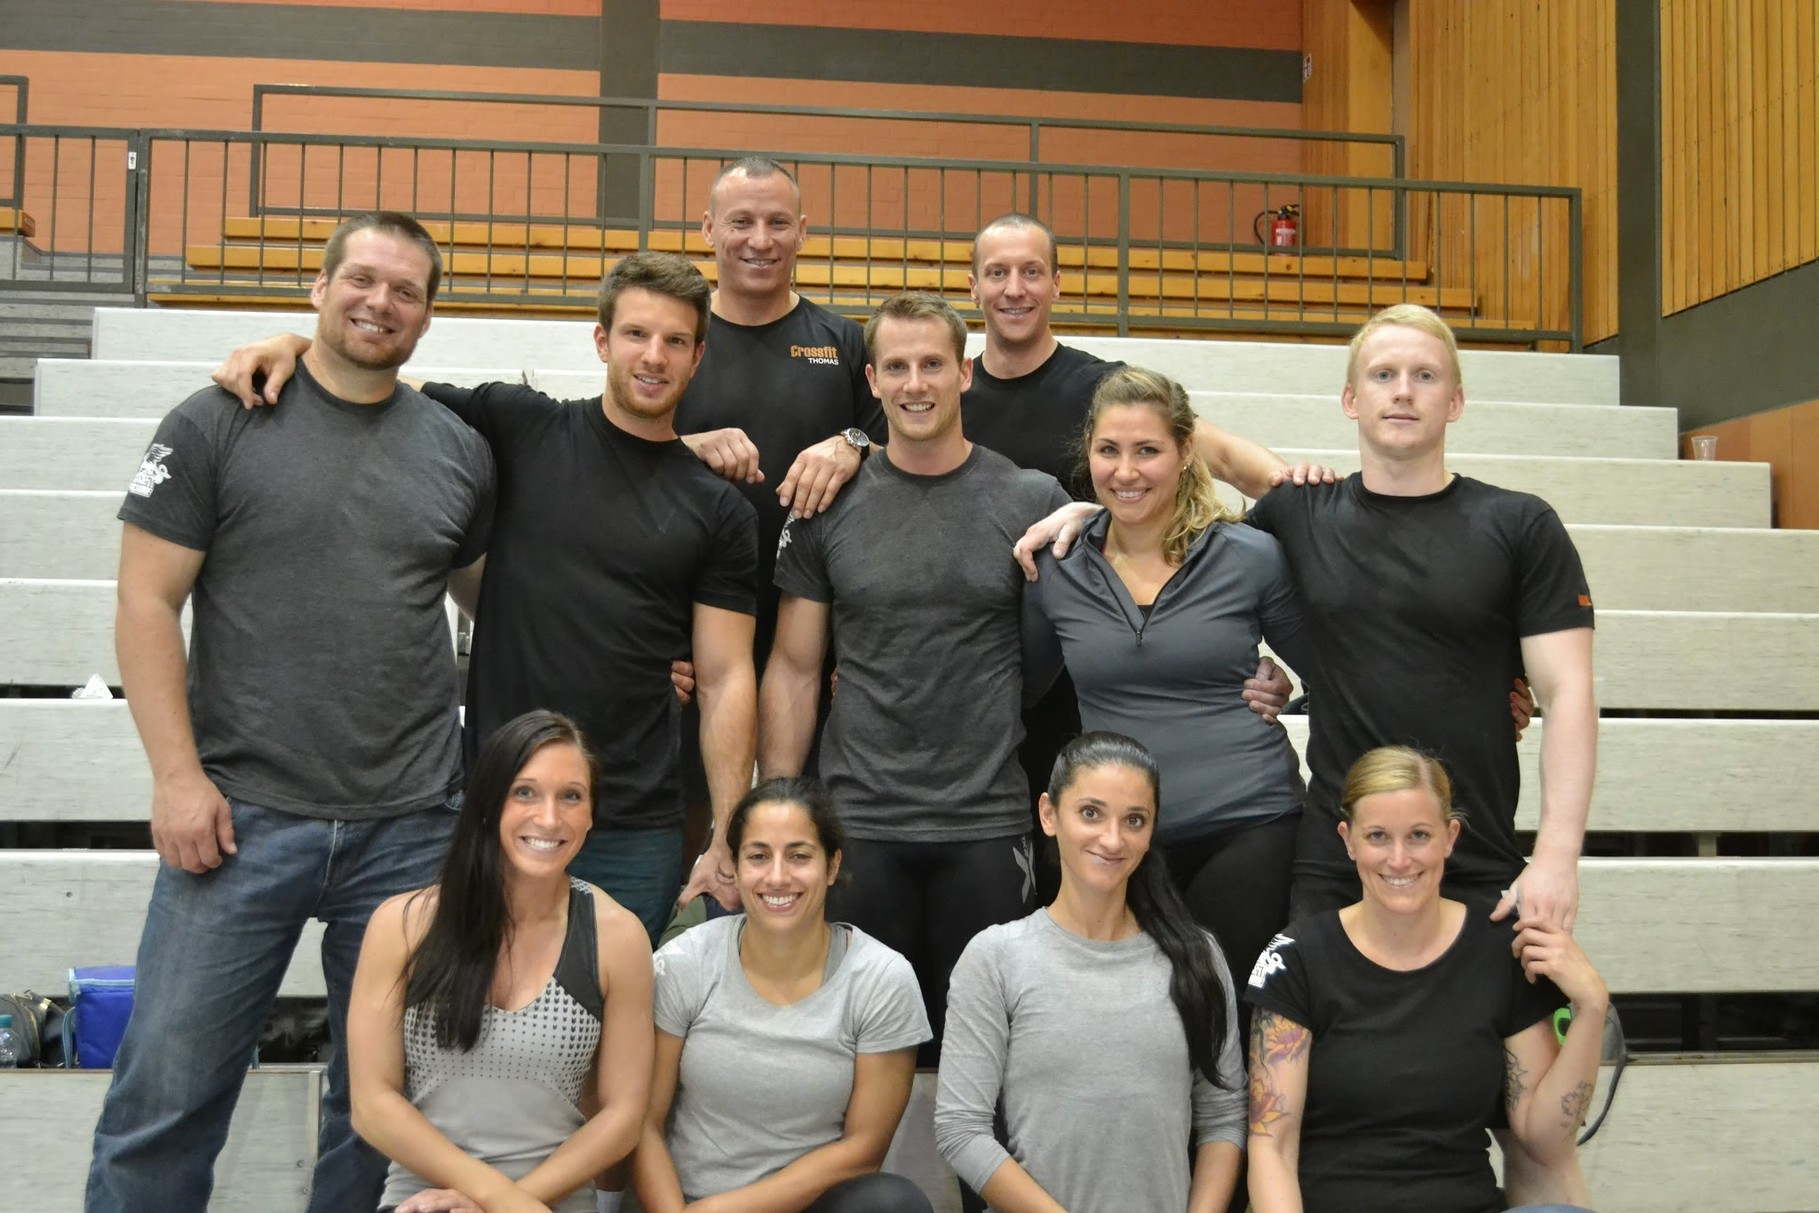 Team CrossFit Basis Karlsruhe